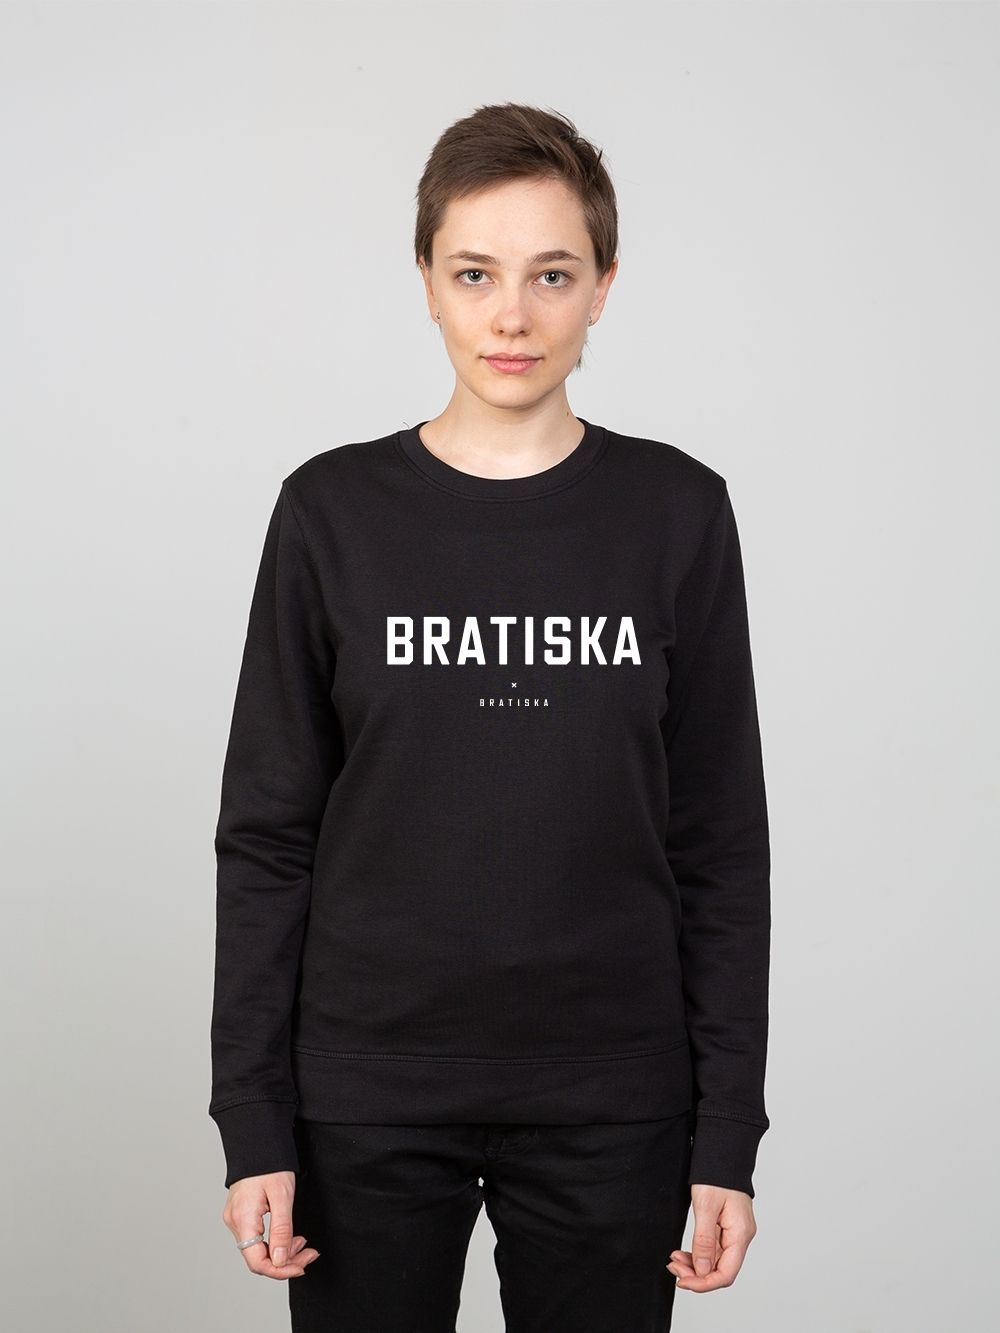 Bratiska Simple